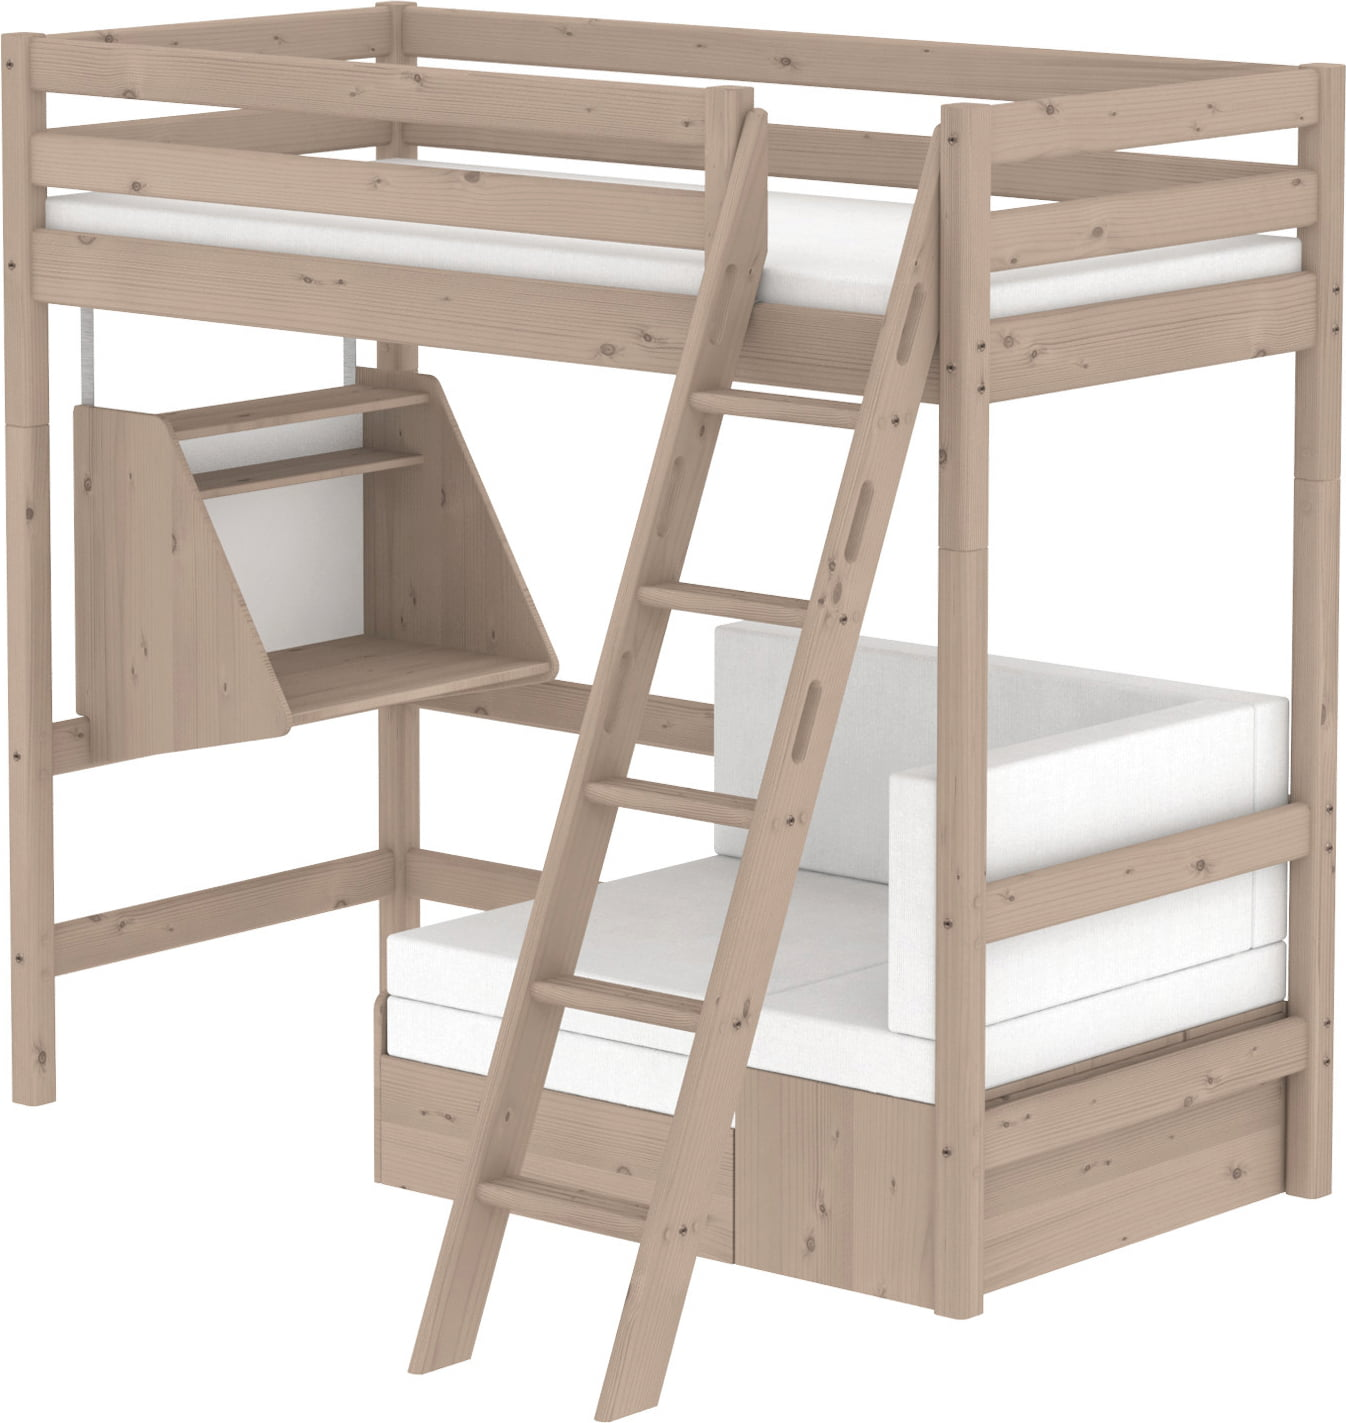 Kinderhochbett Flexa Loft Bed Classic Casa With Sofa Bed And Hanging Desk With Inclined Ladder